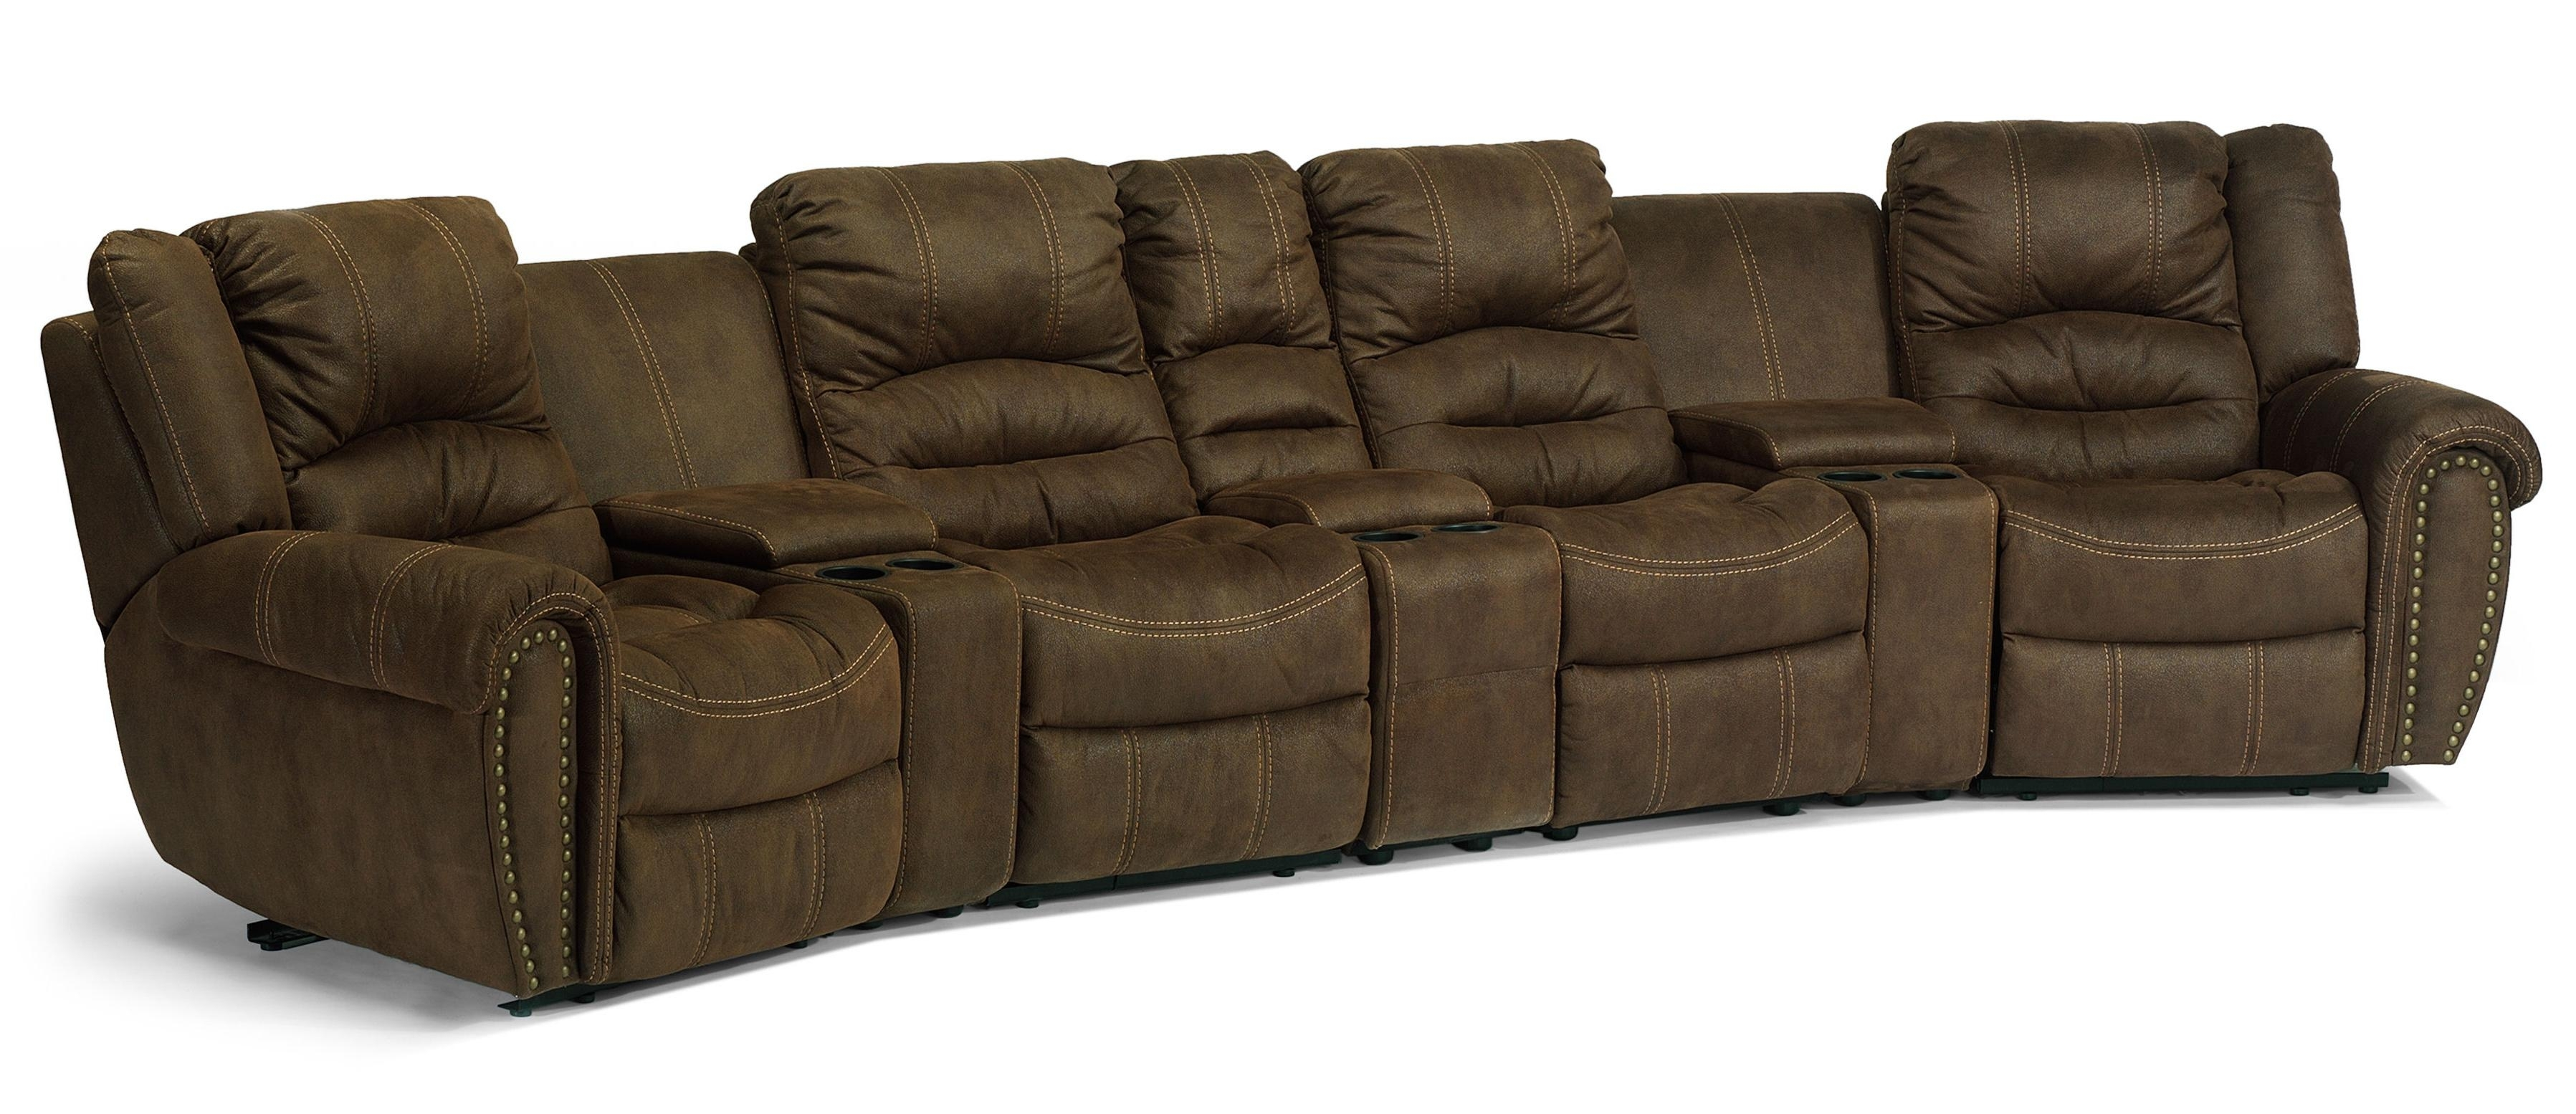 Flexsteel Latitudes – New Town Curved Reclining Sectional Sofa With For Johnson City Tn Sectional Sofas (View 7 of 10)